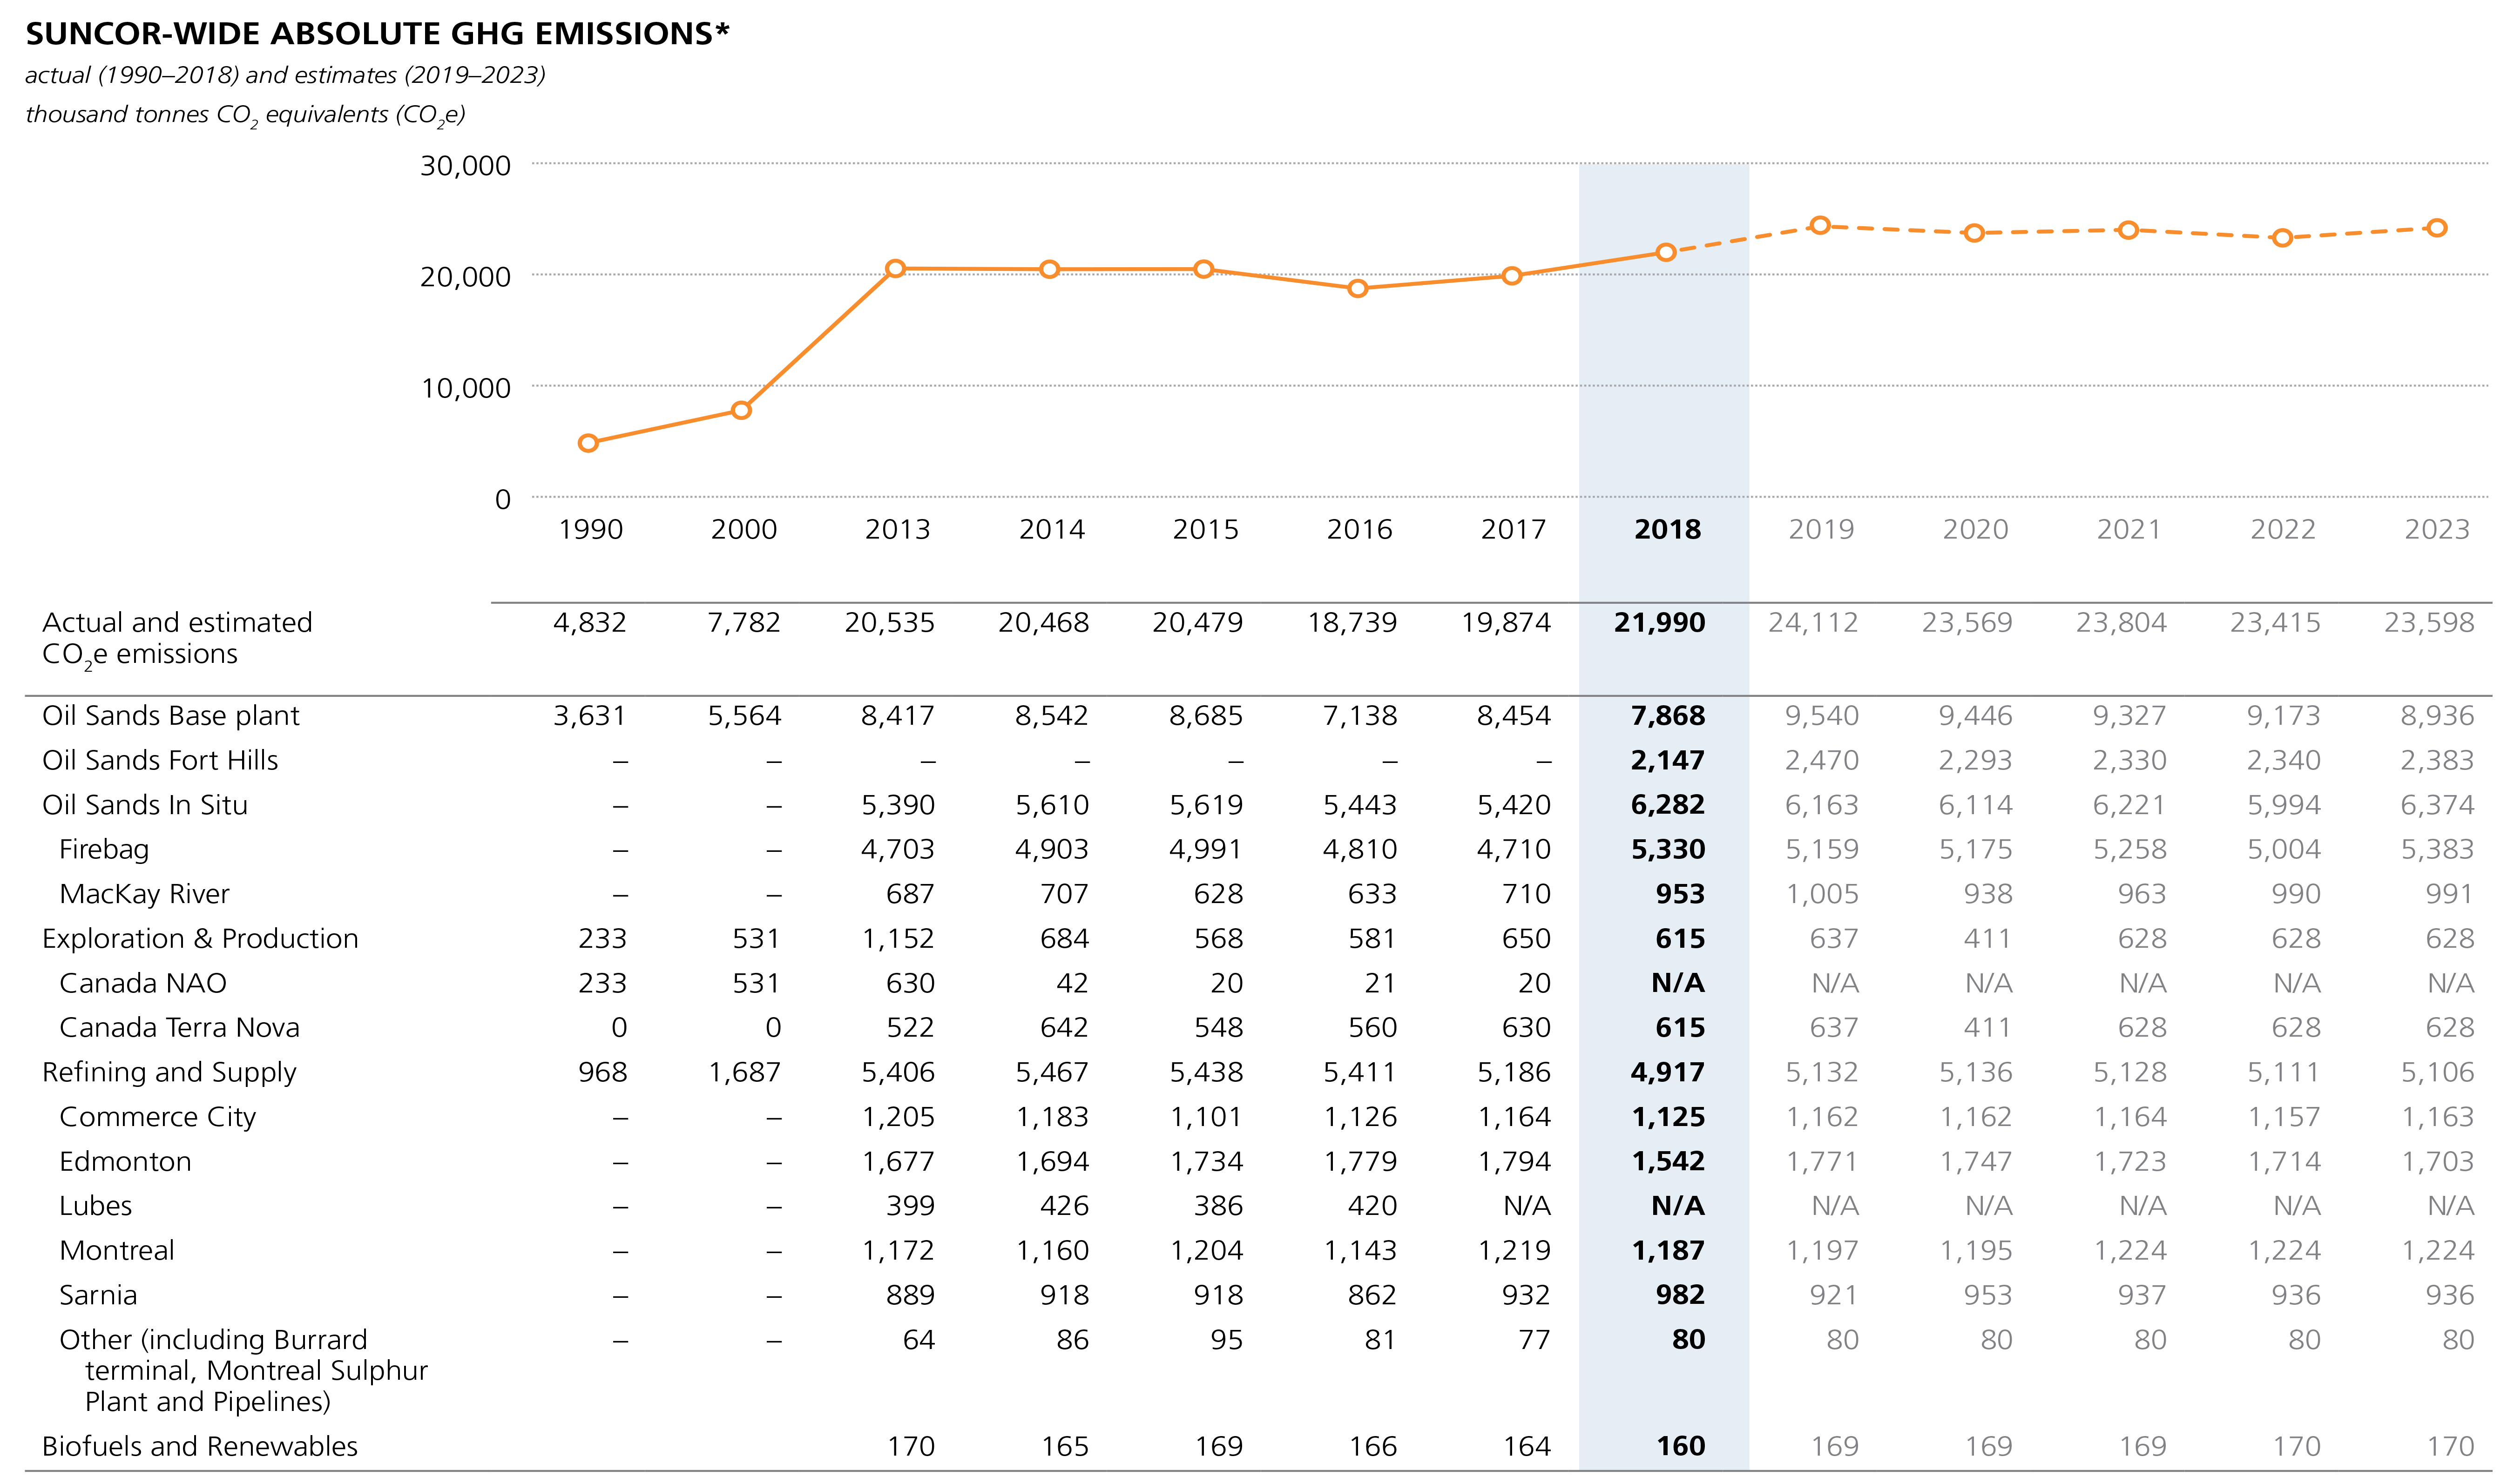 Suncor-wide absolute GHG emissions chart